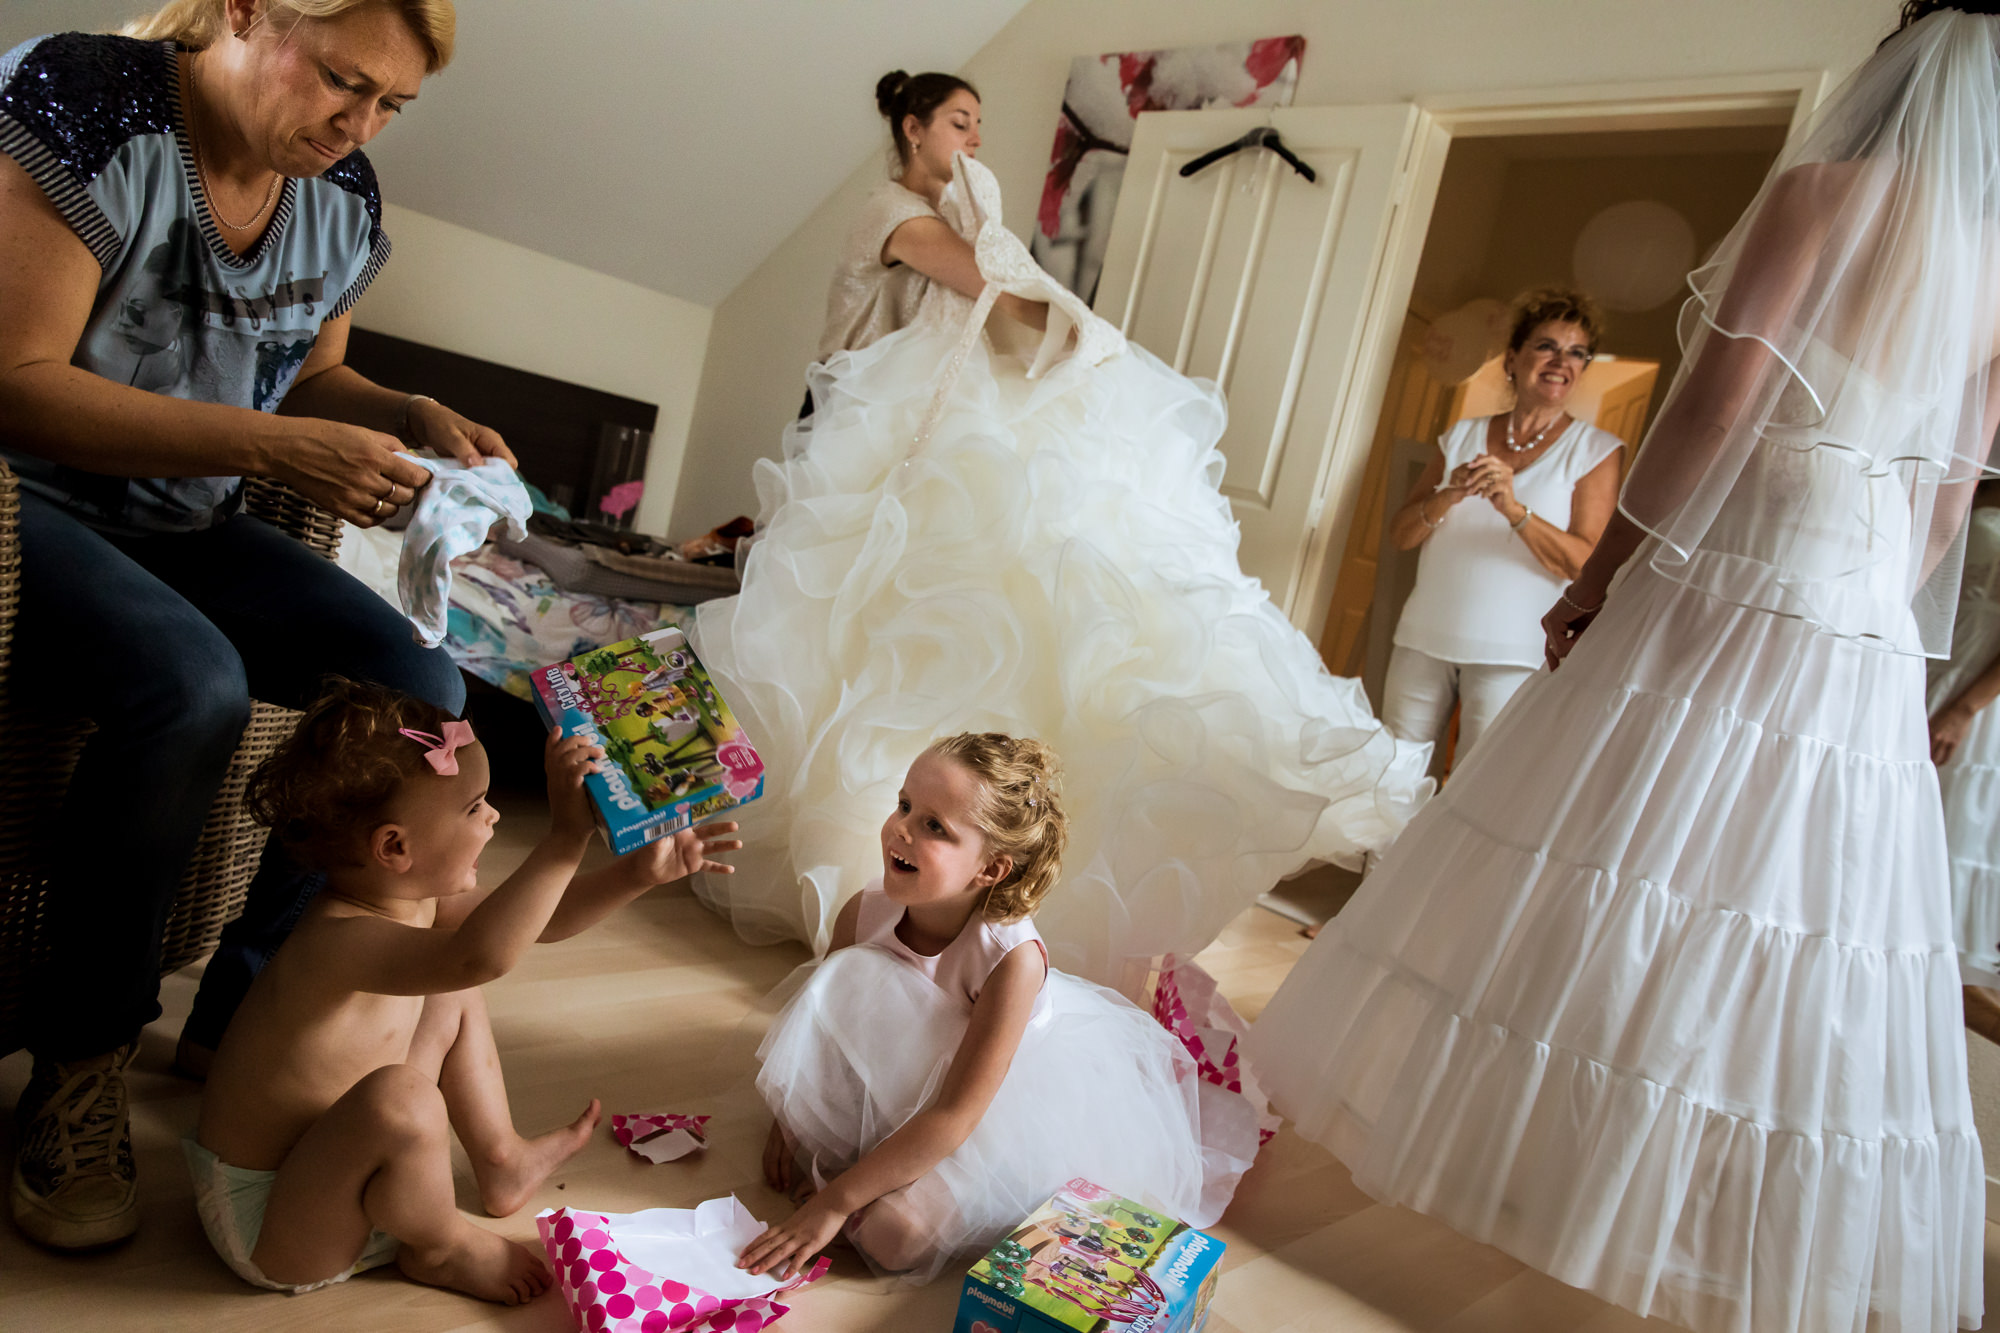 Layered busy bridal room getting ready photo by Fotobelle: Isabelle Hattink